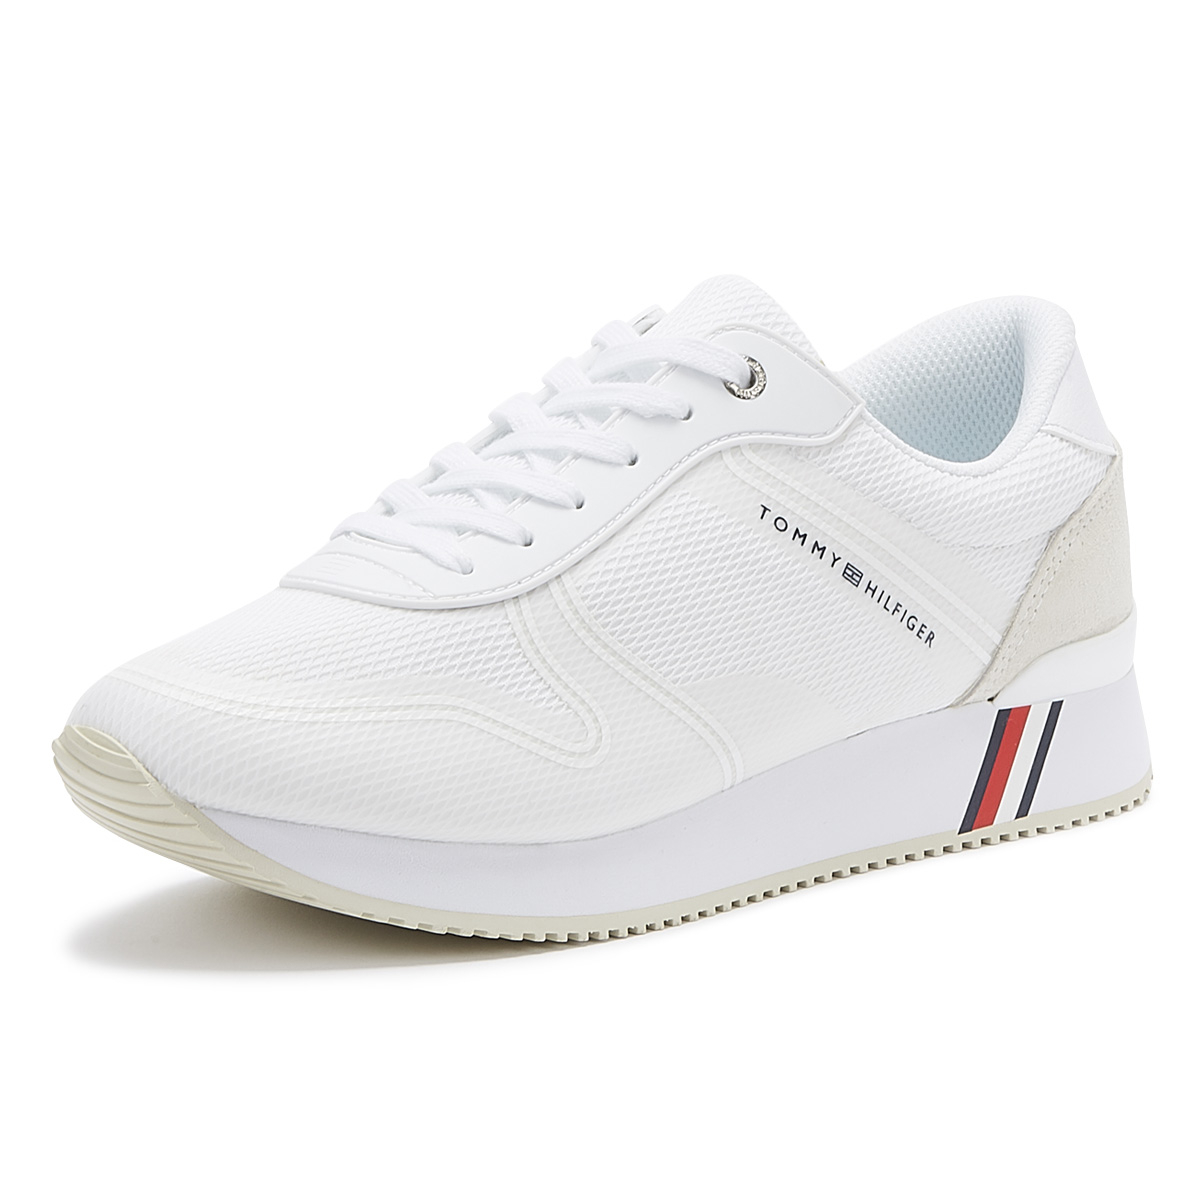 Womens shoes by Tommy Hilfiger | Shop